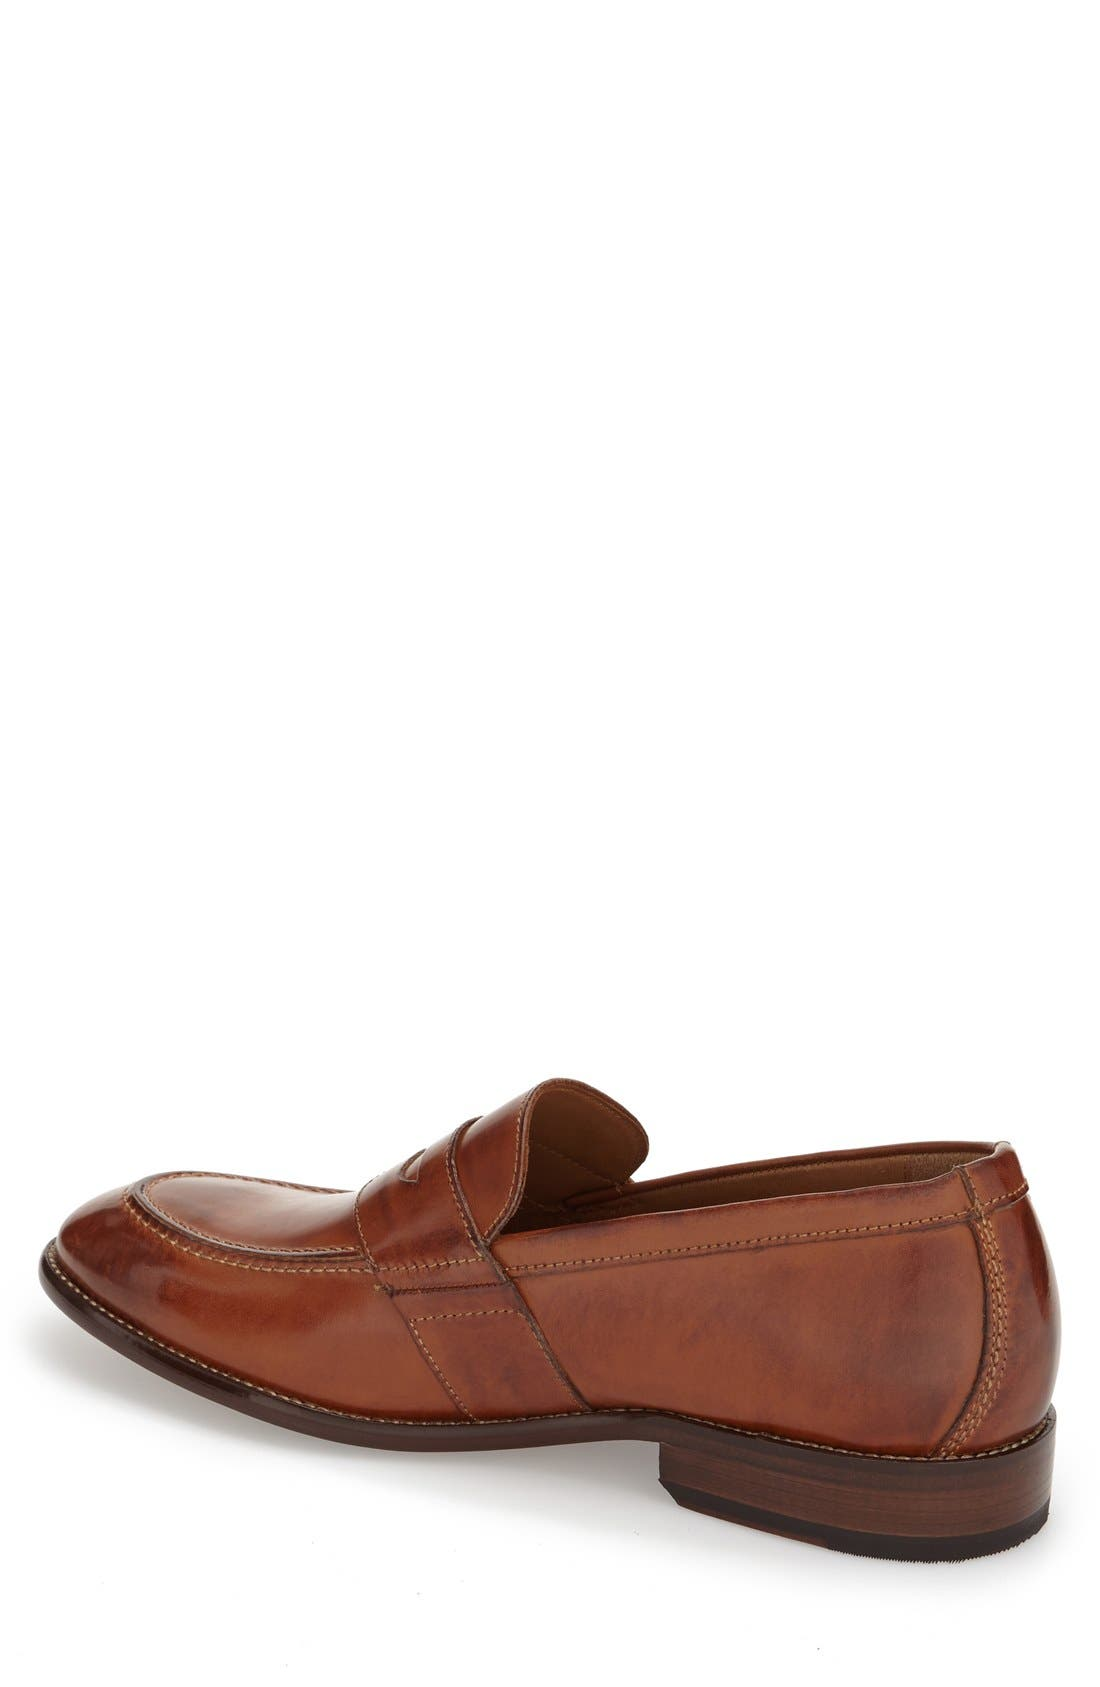 Alternate Image 2  - J & M 1850 'Allred' Penny Loafer (Men) (Nordstrom Exclusive)